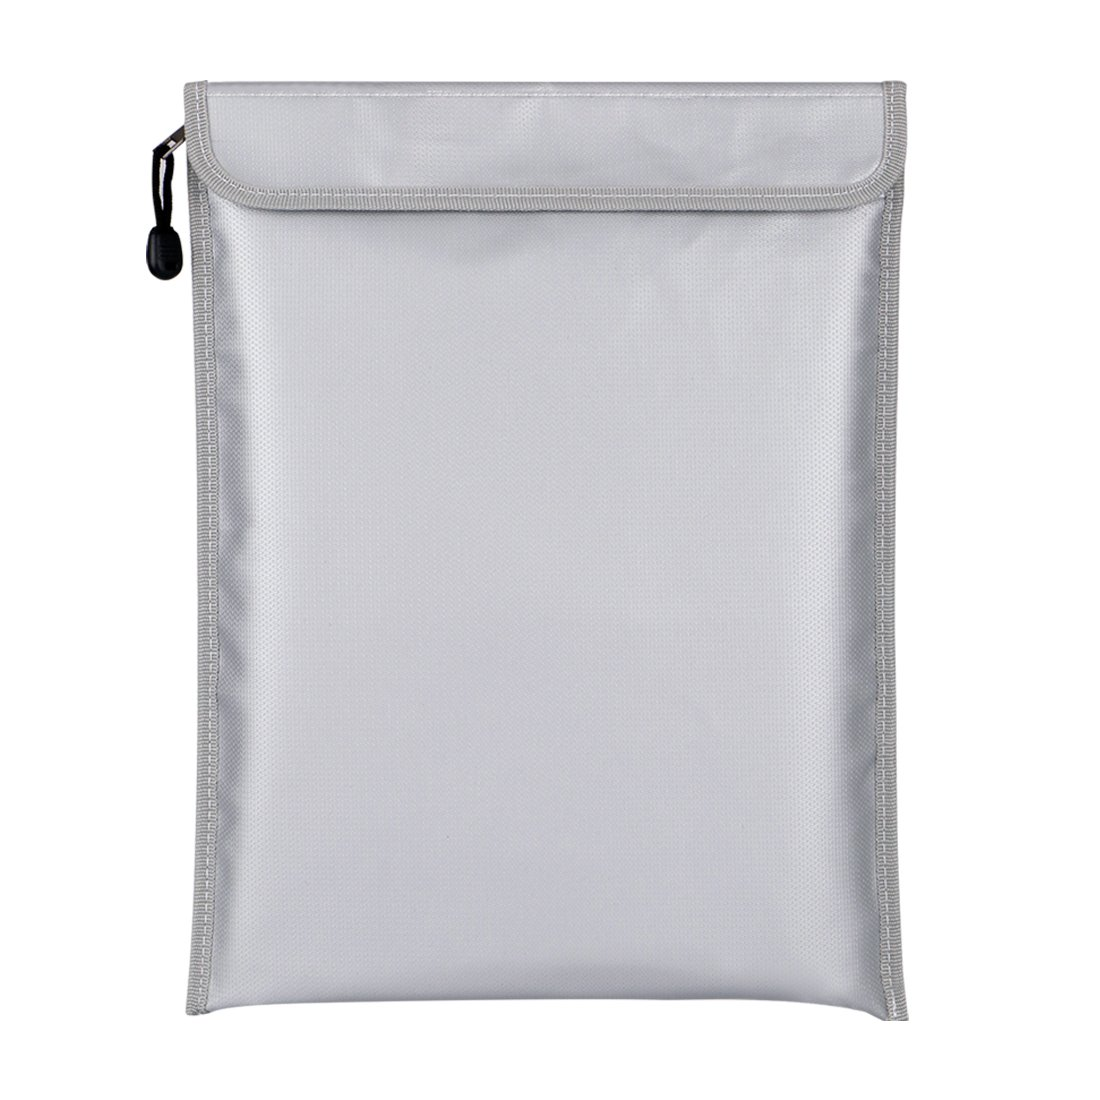 Fireproof Document Bags 29x43CM Zipper Closure No-Itch Silicone Coated Fiberglass, Heat-Proof Aluminum Fireproof Safe Bag for Money, Documents, Jewelry and Passport